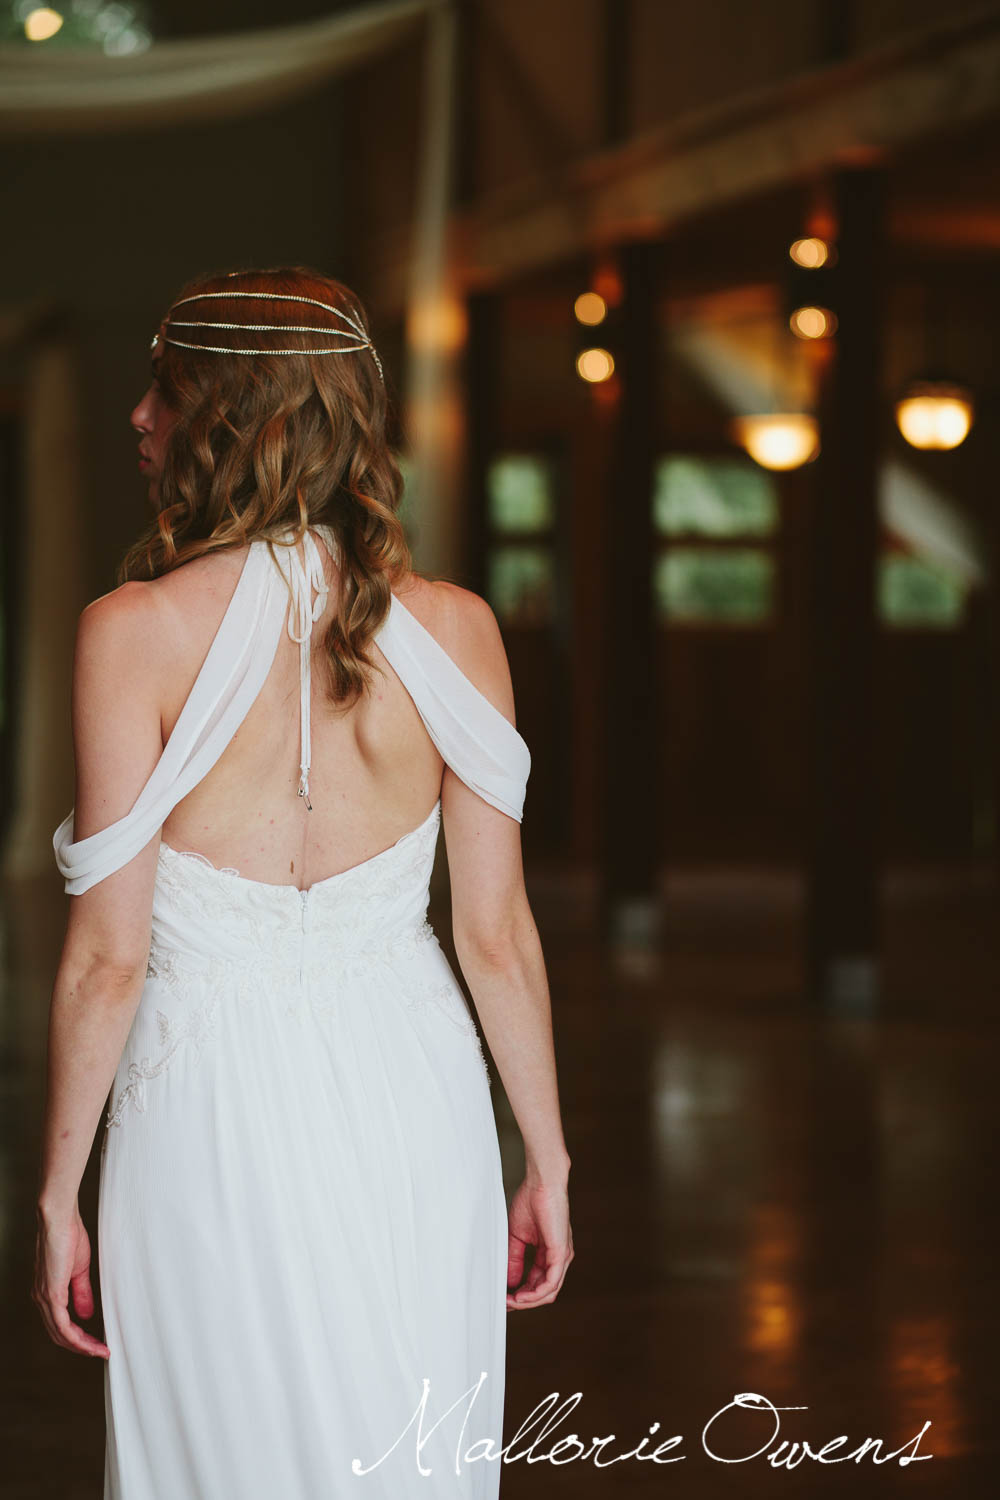 Bridal Session at new Austin wedding venue | MALLORIE OWENS